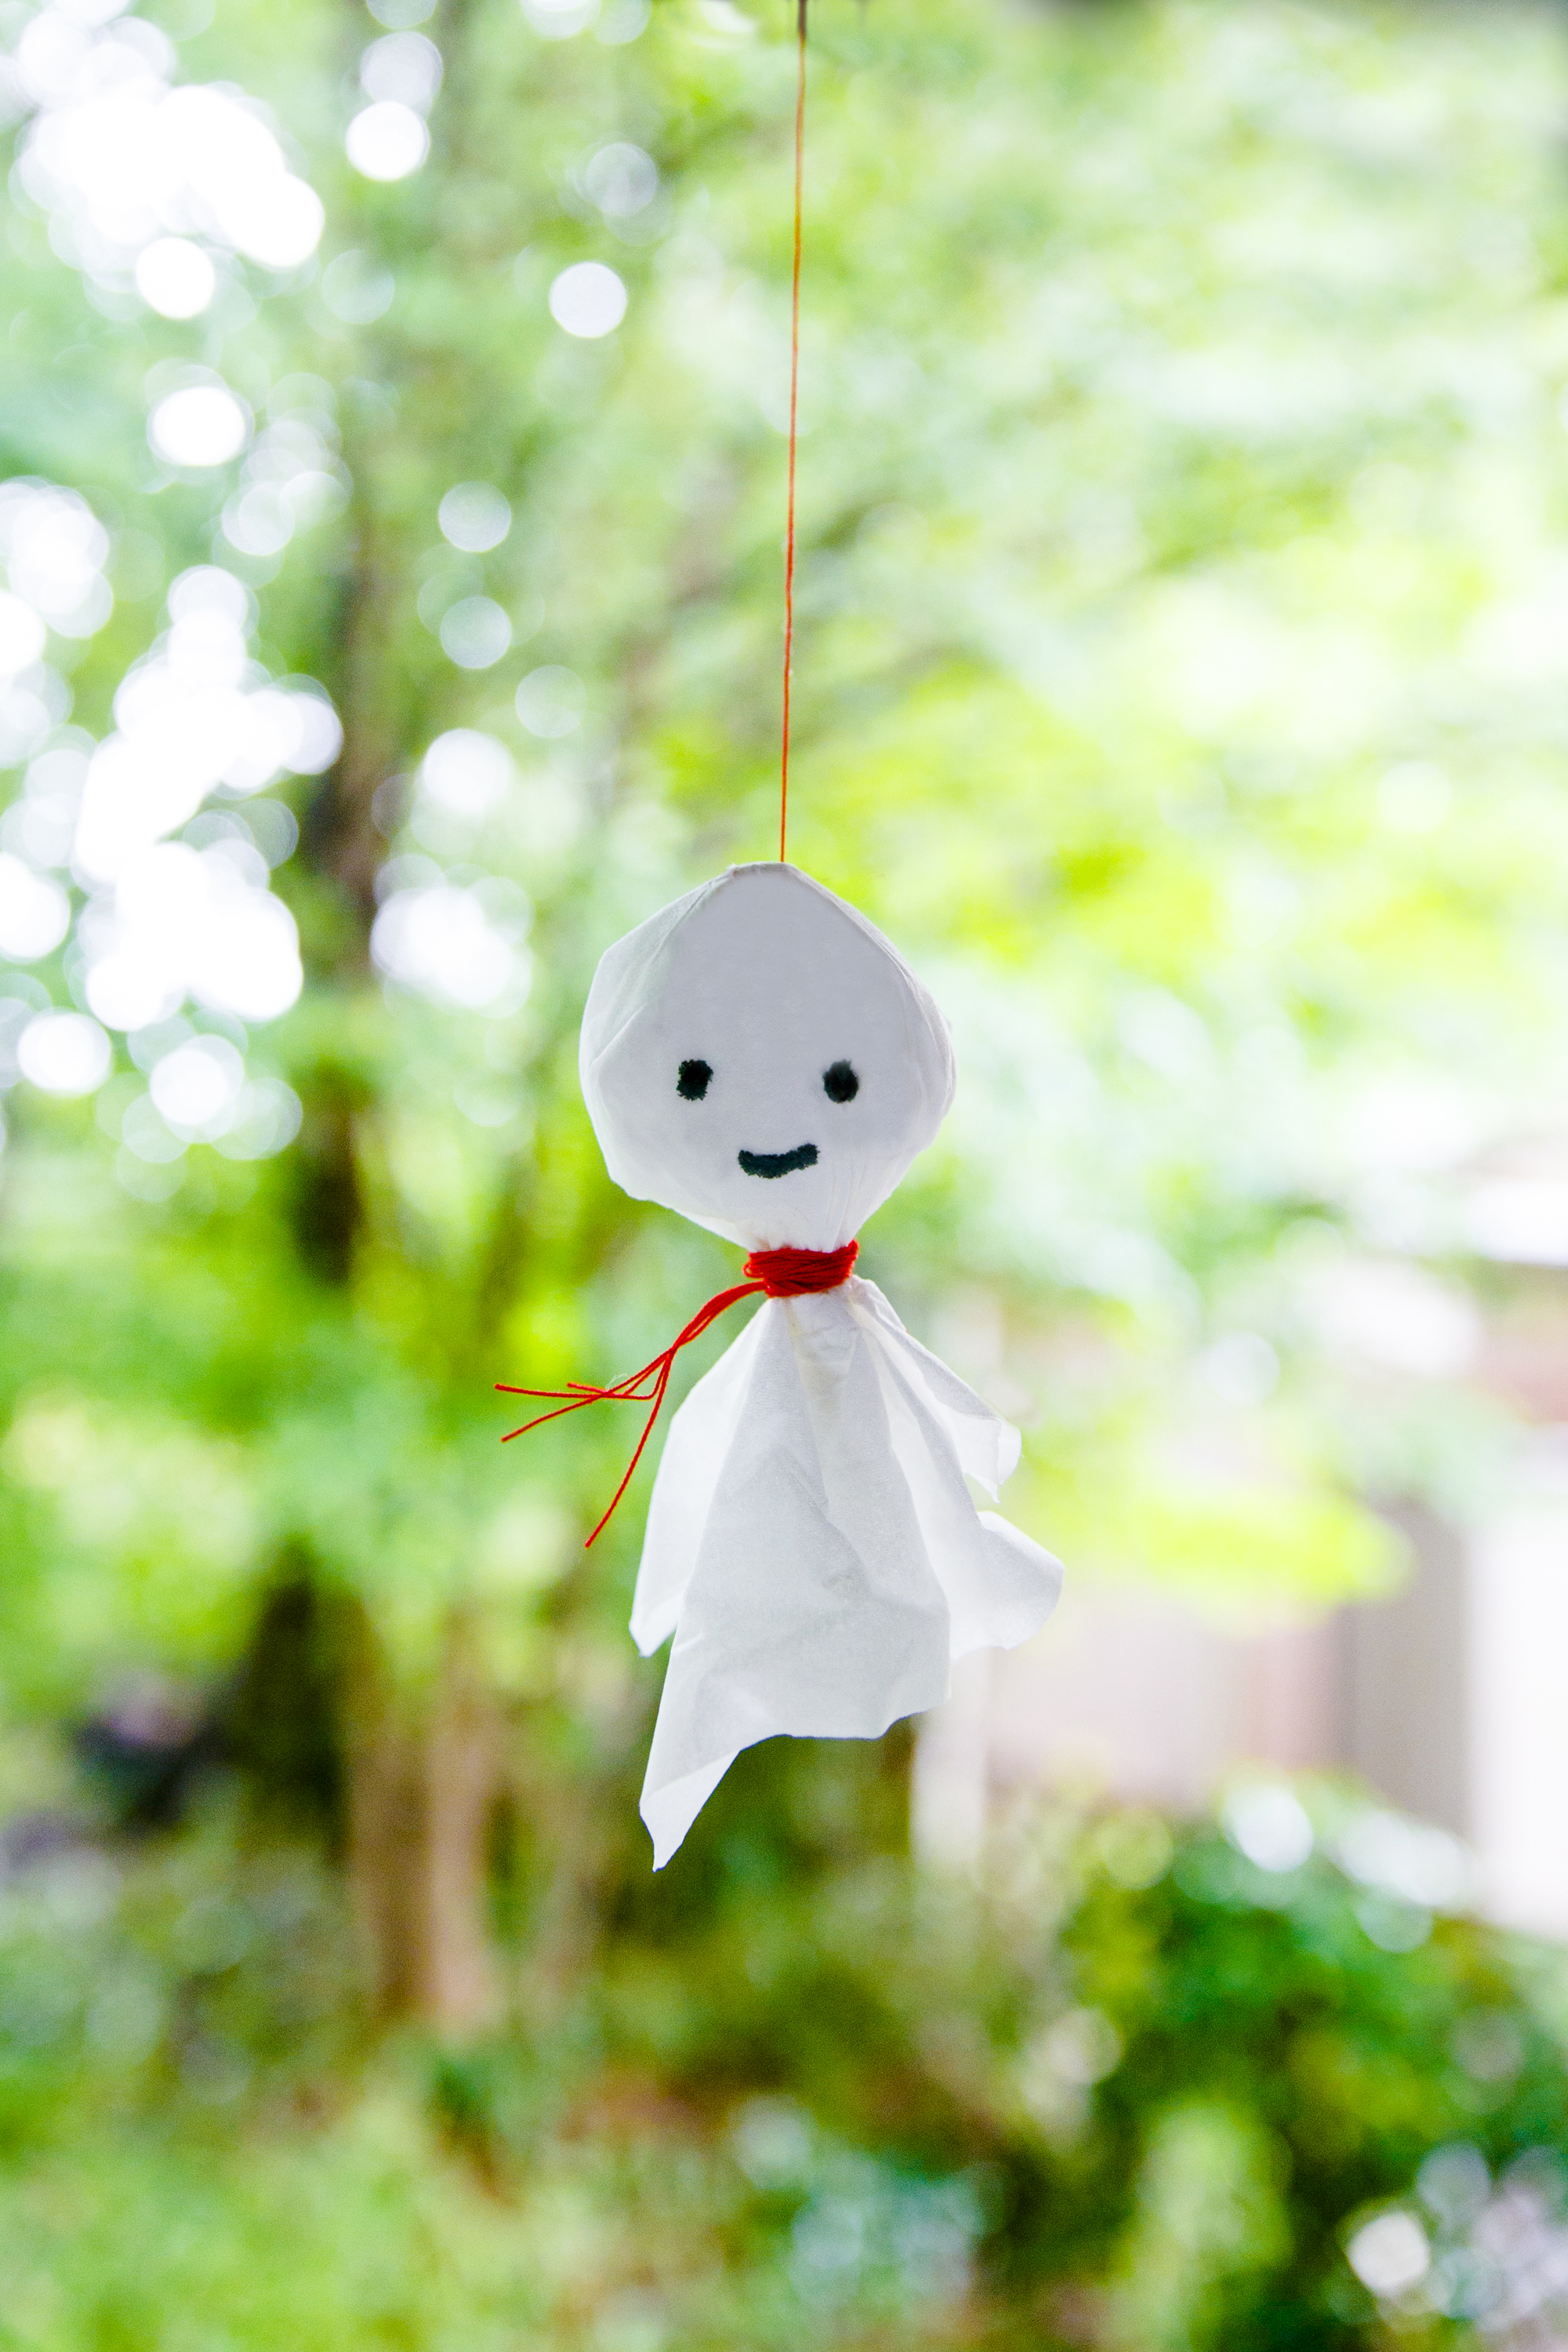 Tokyo Q&A: Why are there little white puppets hanging around windows in Tokyo?